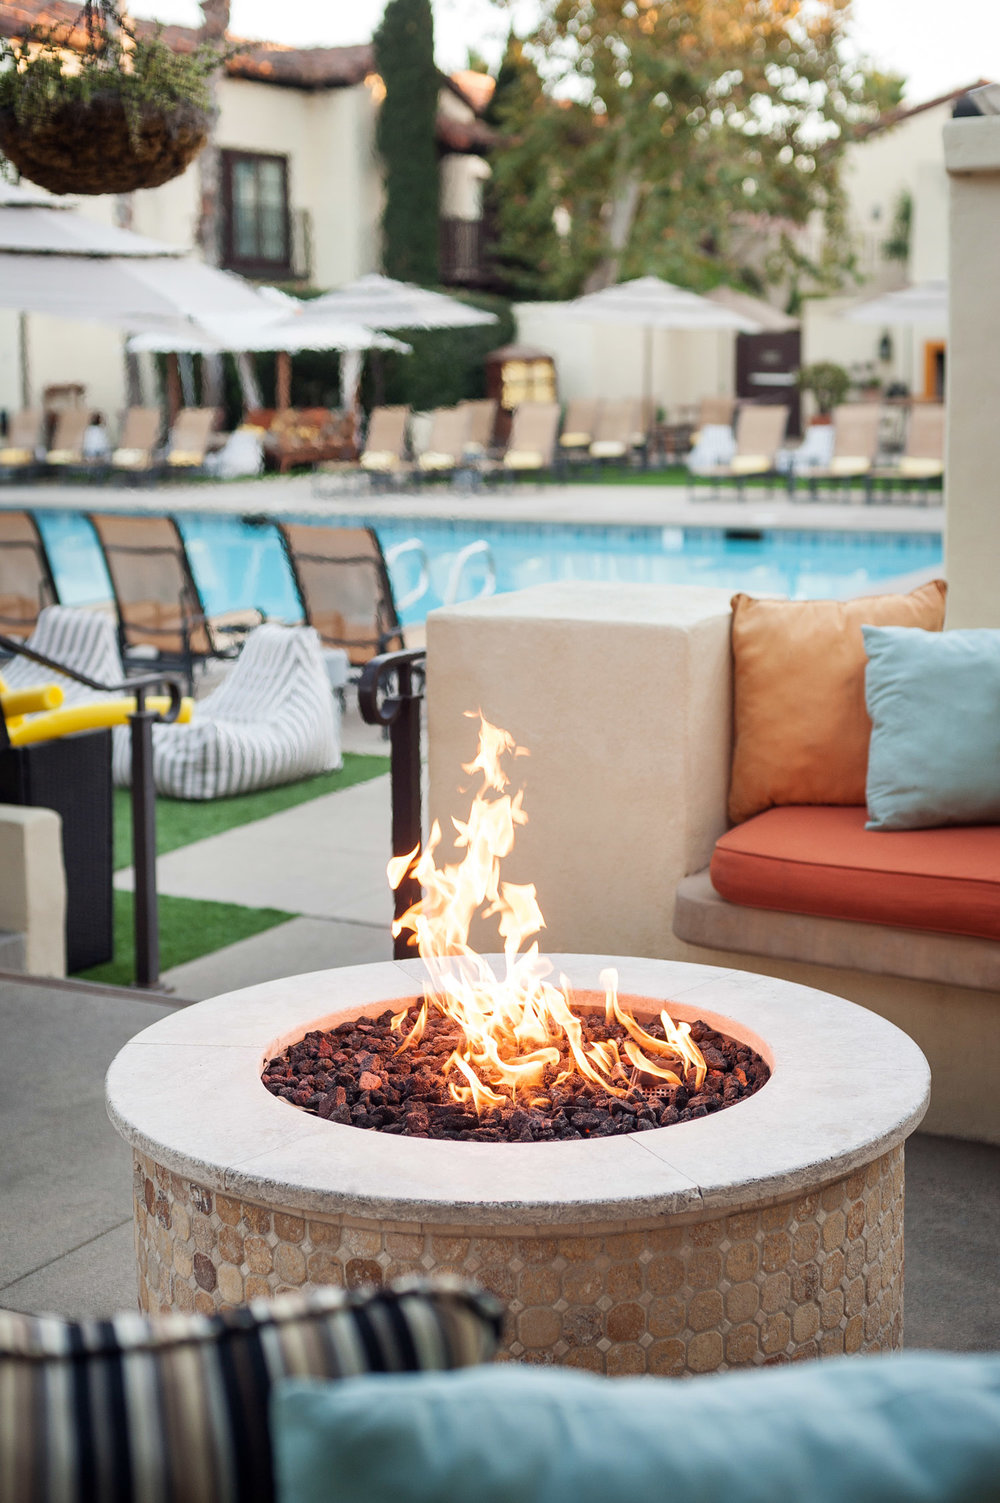 Fire pit at Estancia Hotel, resort photographer southern California, southern california hotel photographer